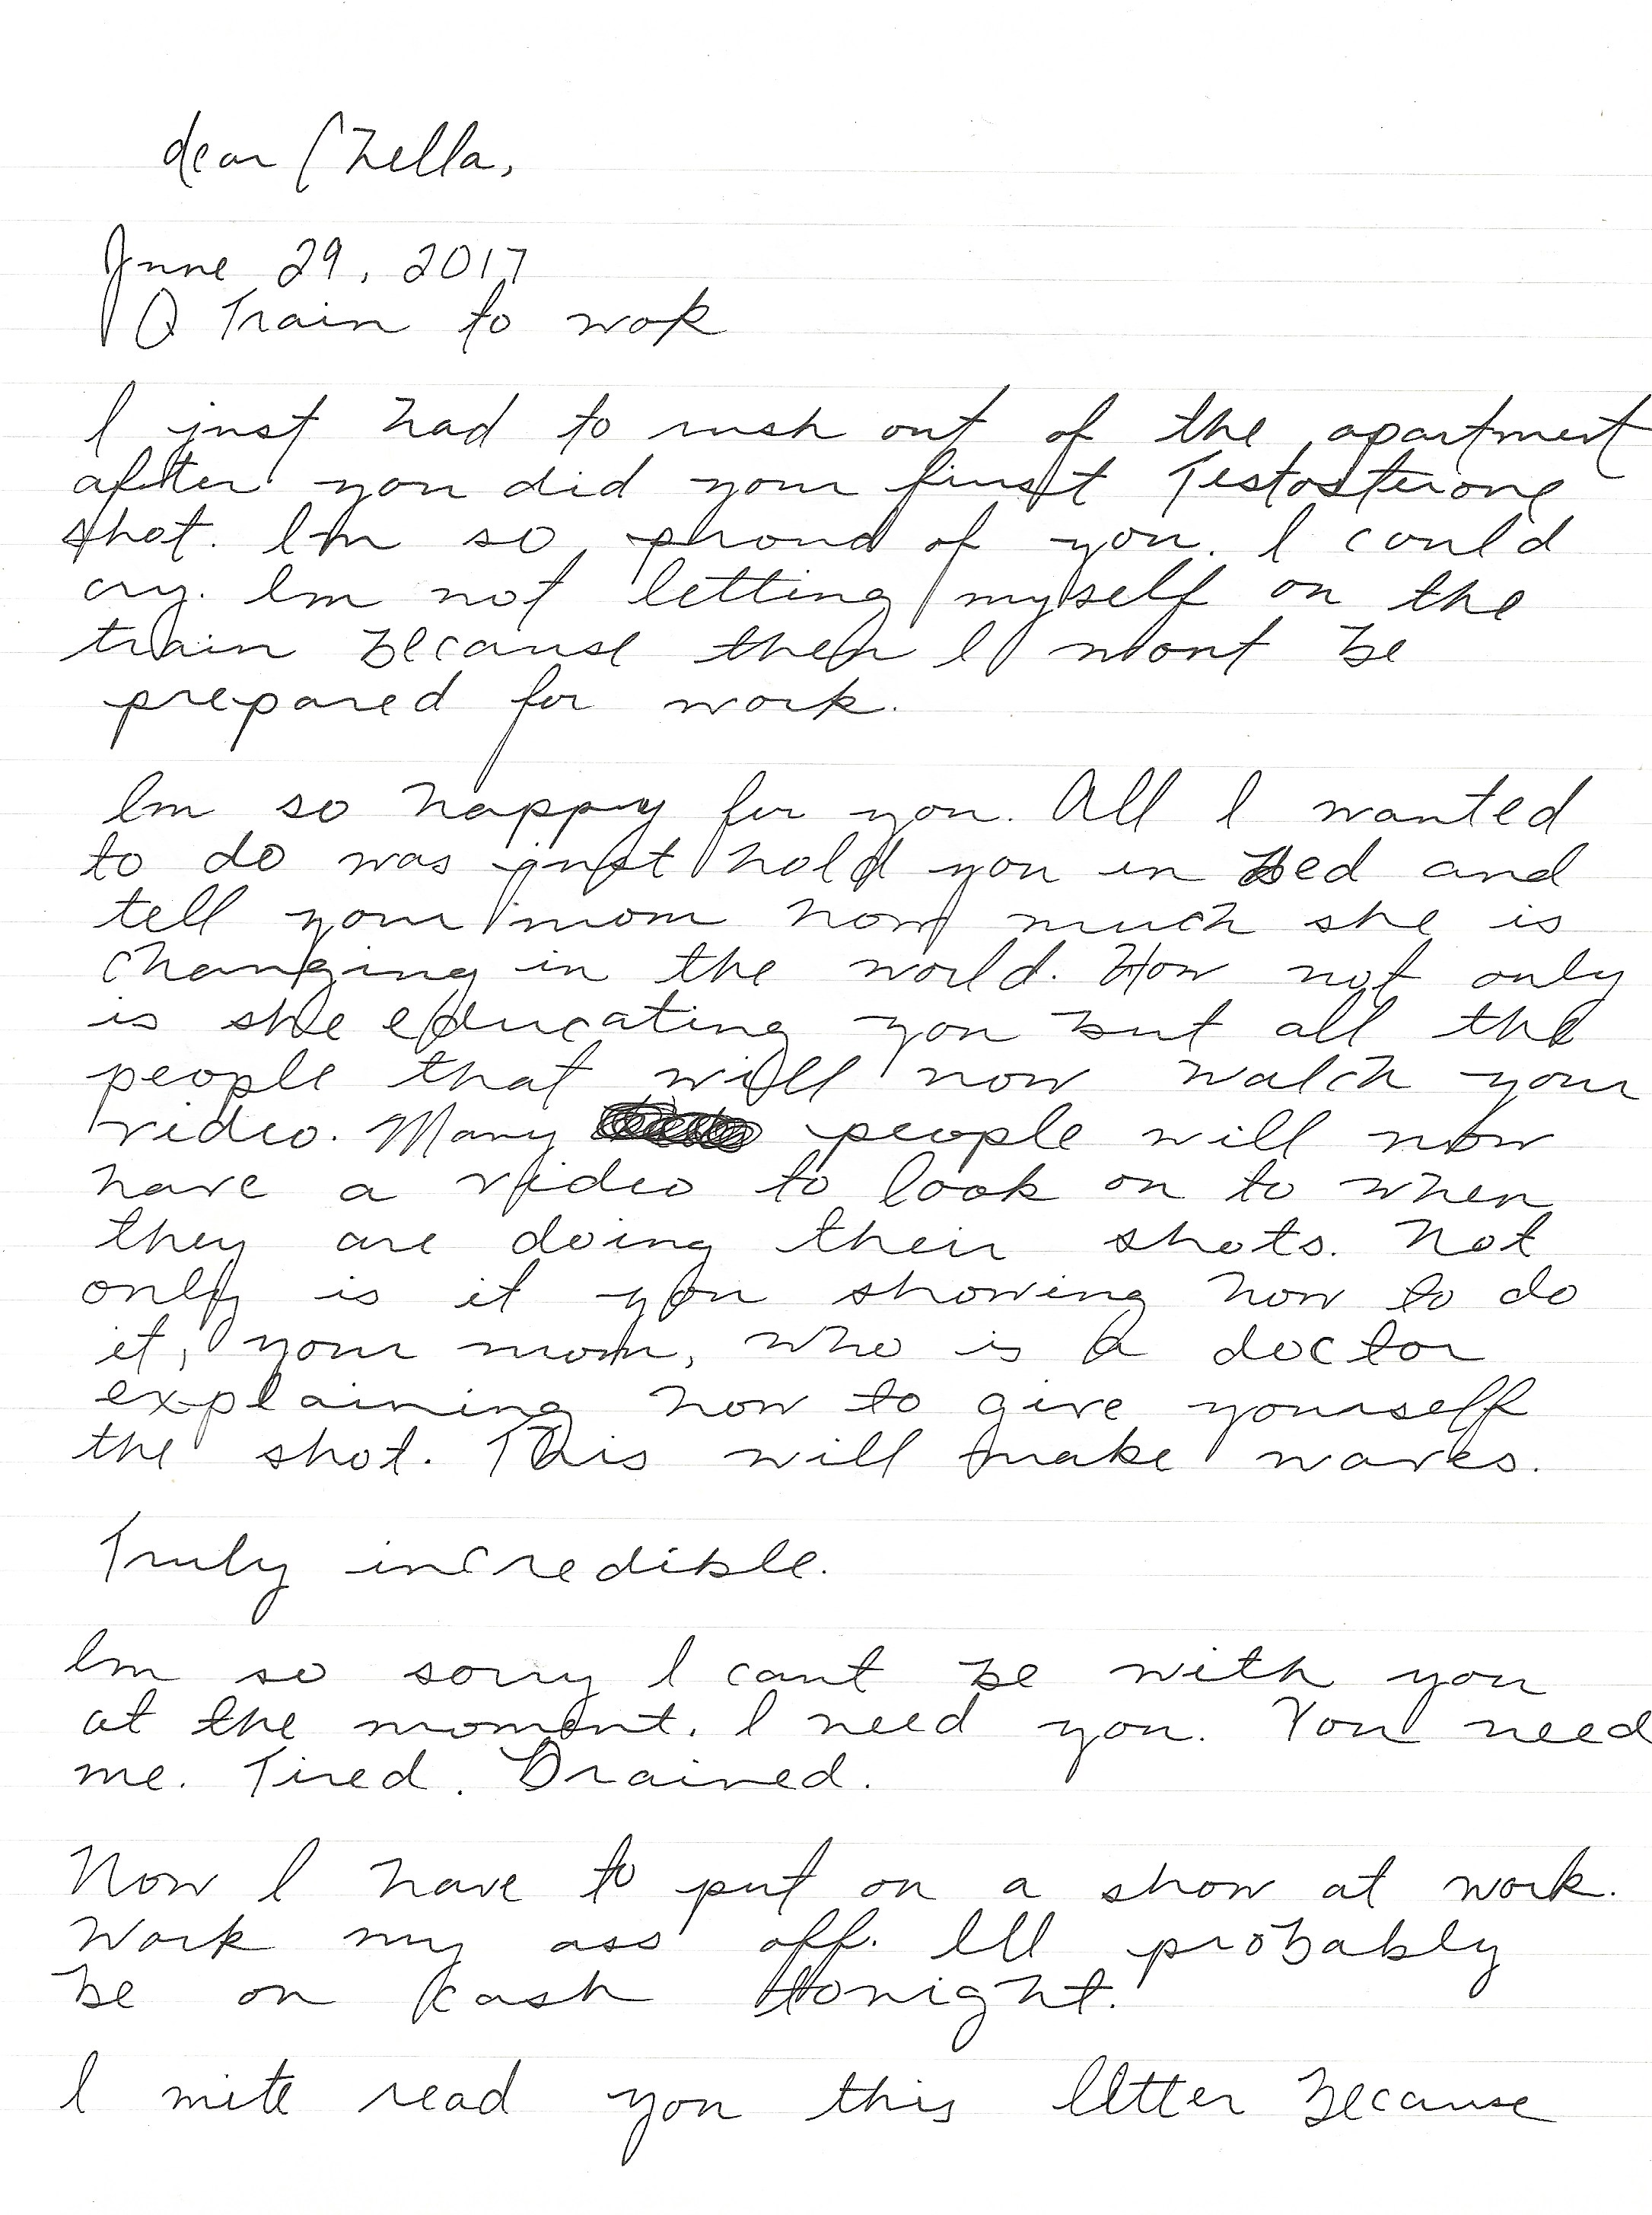 6_29_17 CGD Letter (front).jpeg